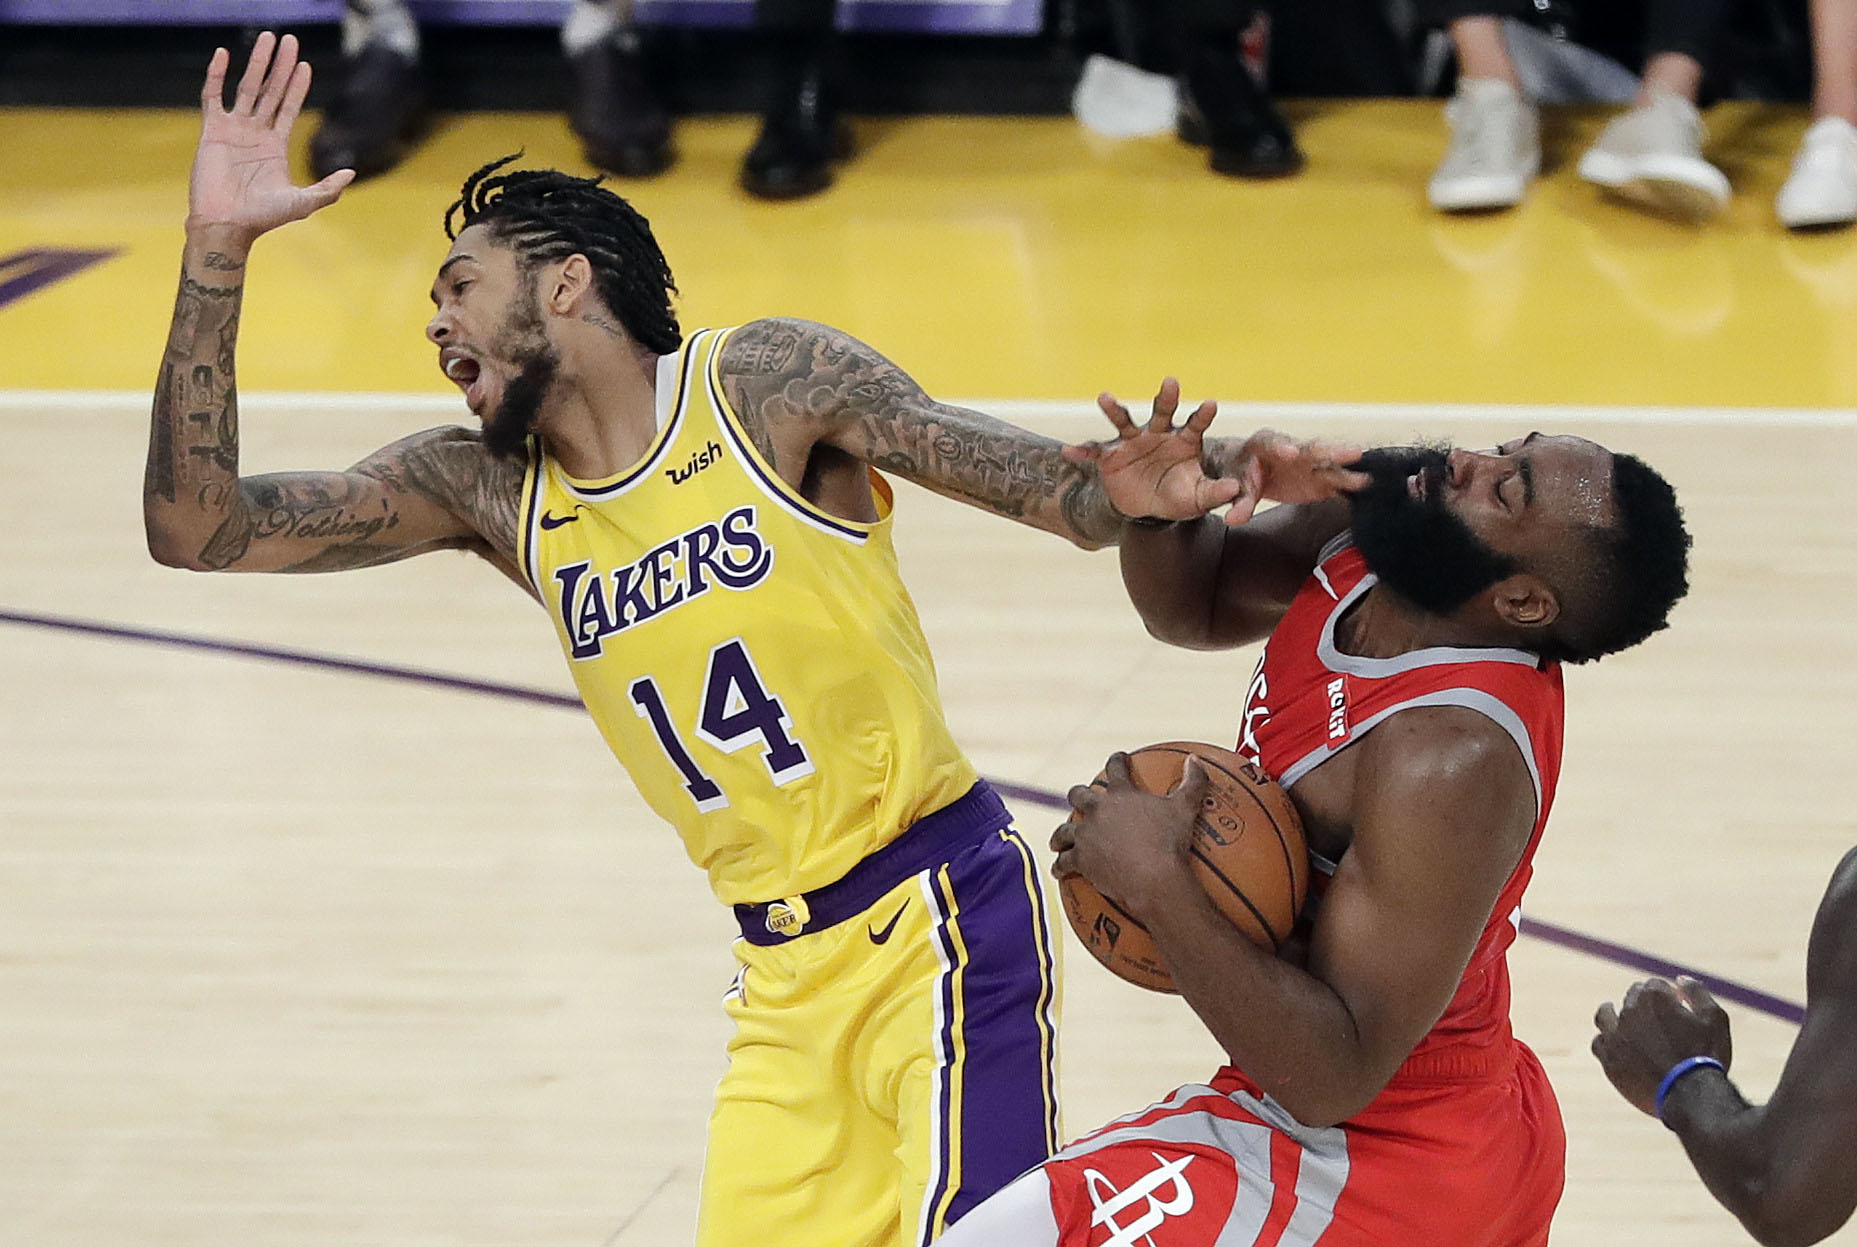 Houston Rockets' James Harden (right) collides with Los Angeles Lakers' Brandon Ingram (14) during the second half of an NBA basketball game in Los Angeles on Saturday.